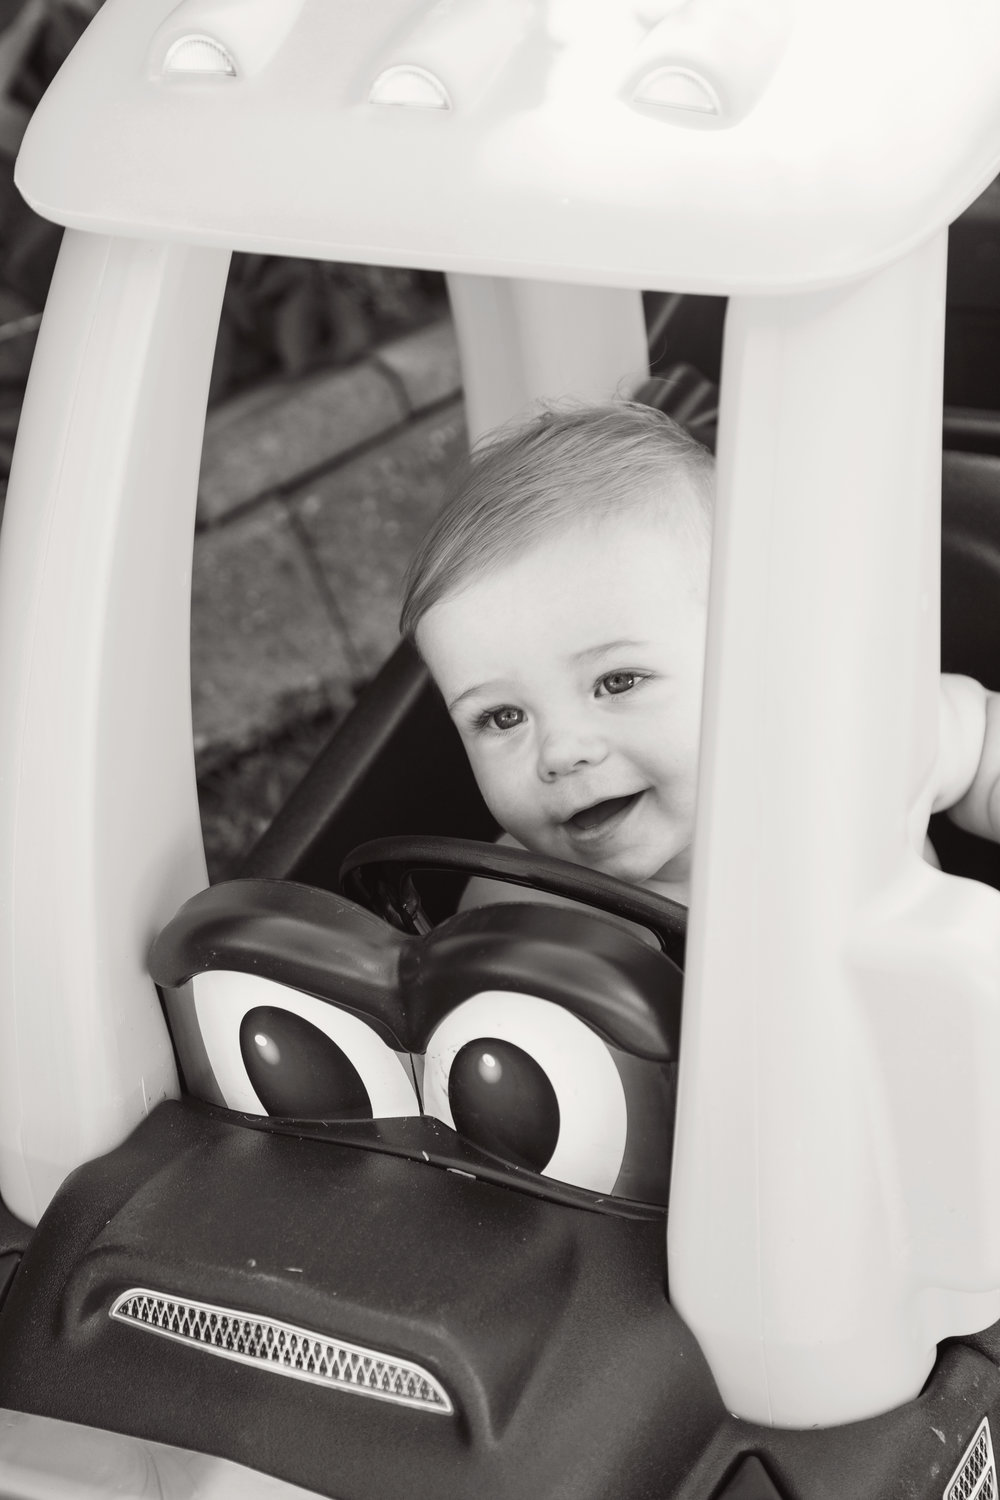 Theo_1stbday_13_bw.jpg